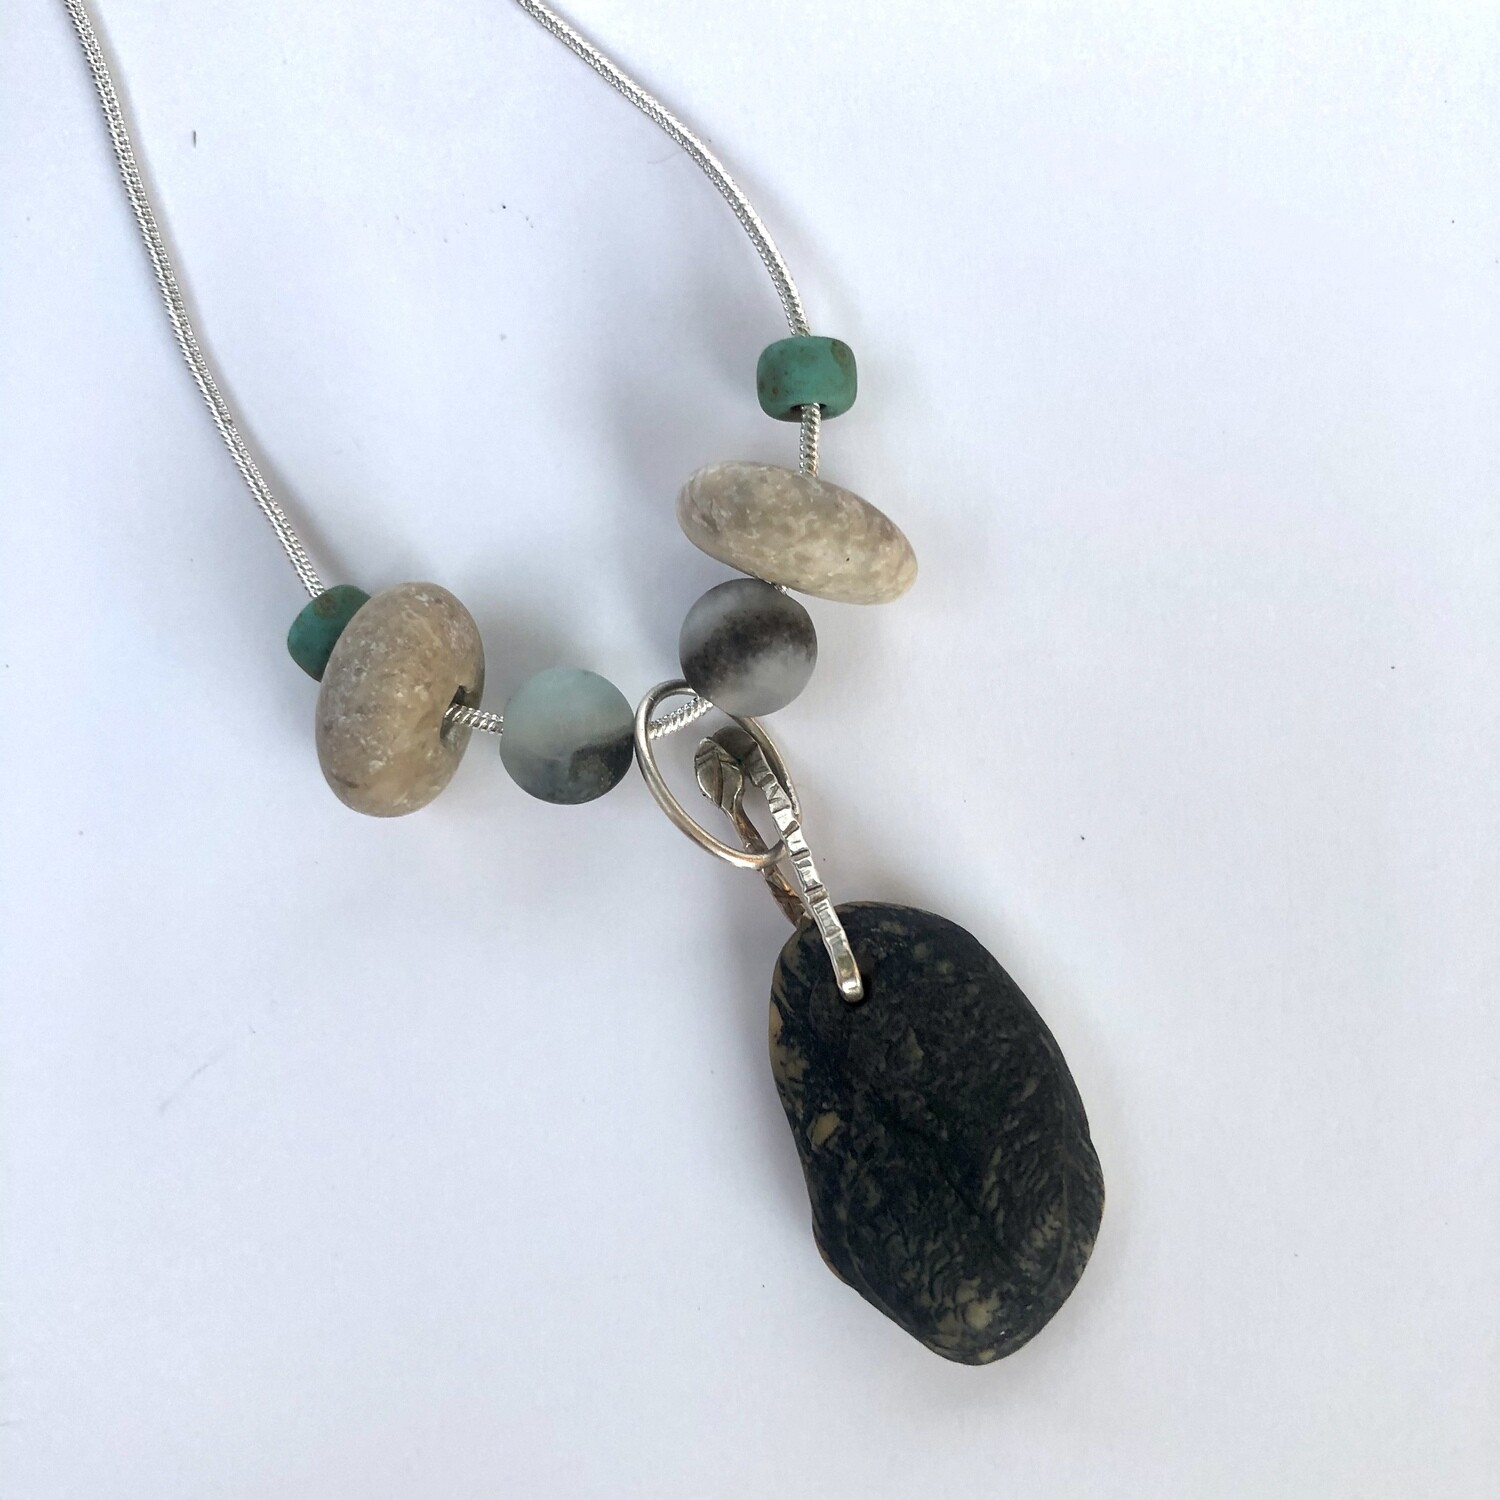 Sterling Silver Pendant with sea glass and fossilized stone